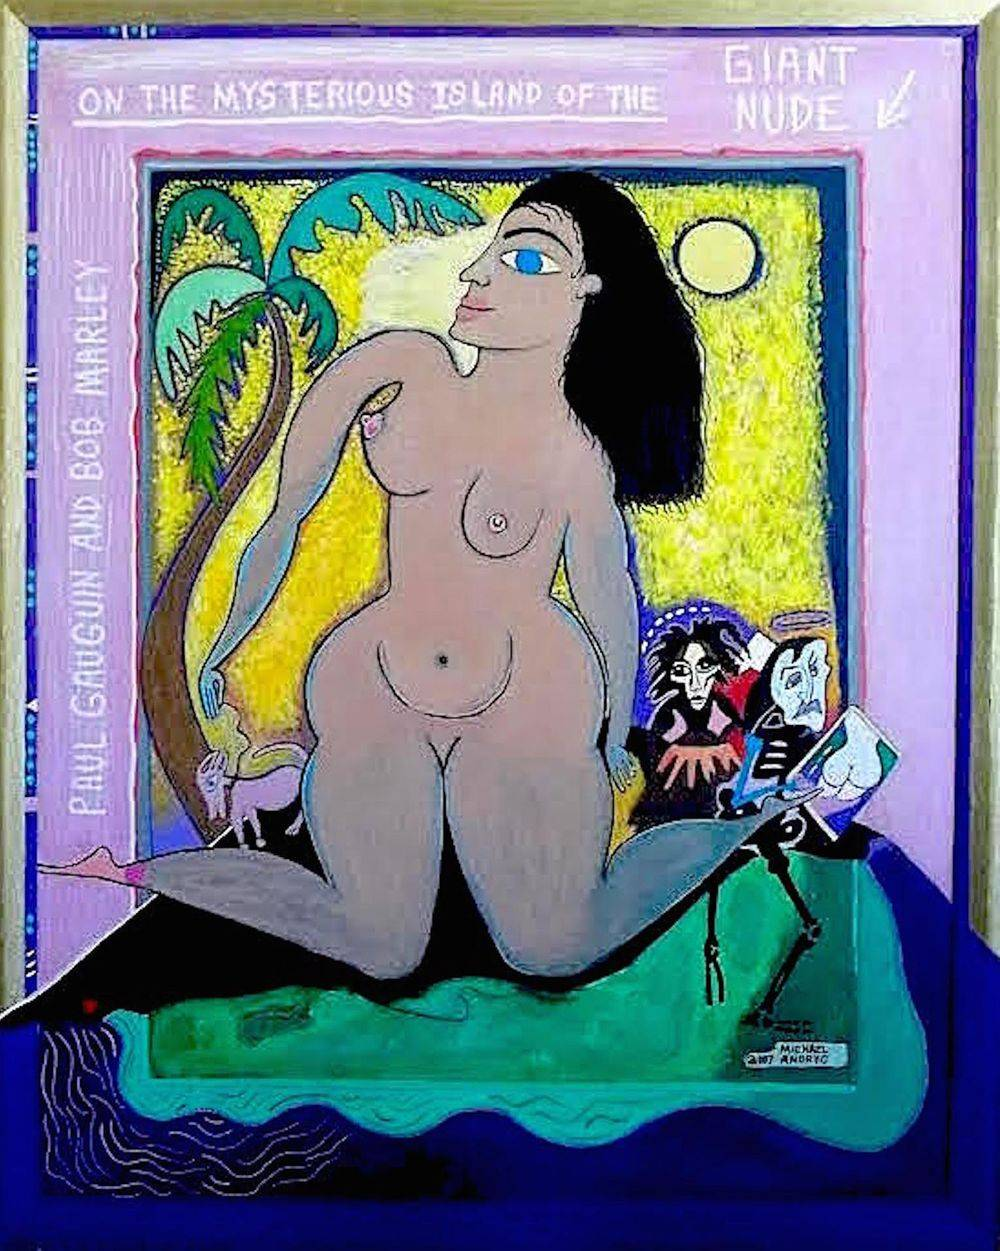 Paul Gauguin and Bob Marley on the Mysterious Island of the Giant Nude